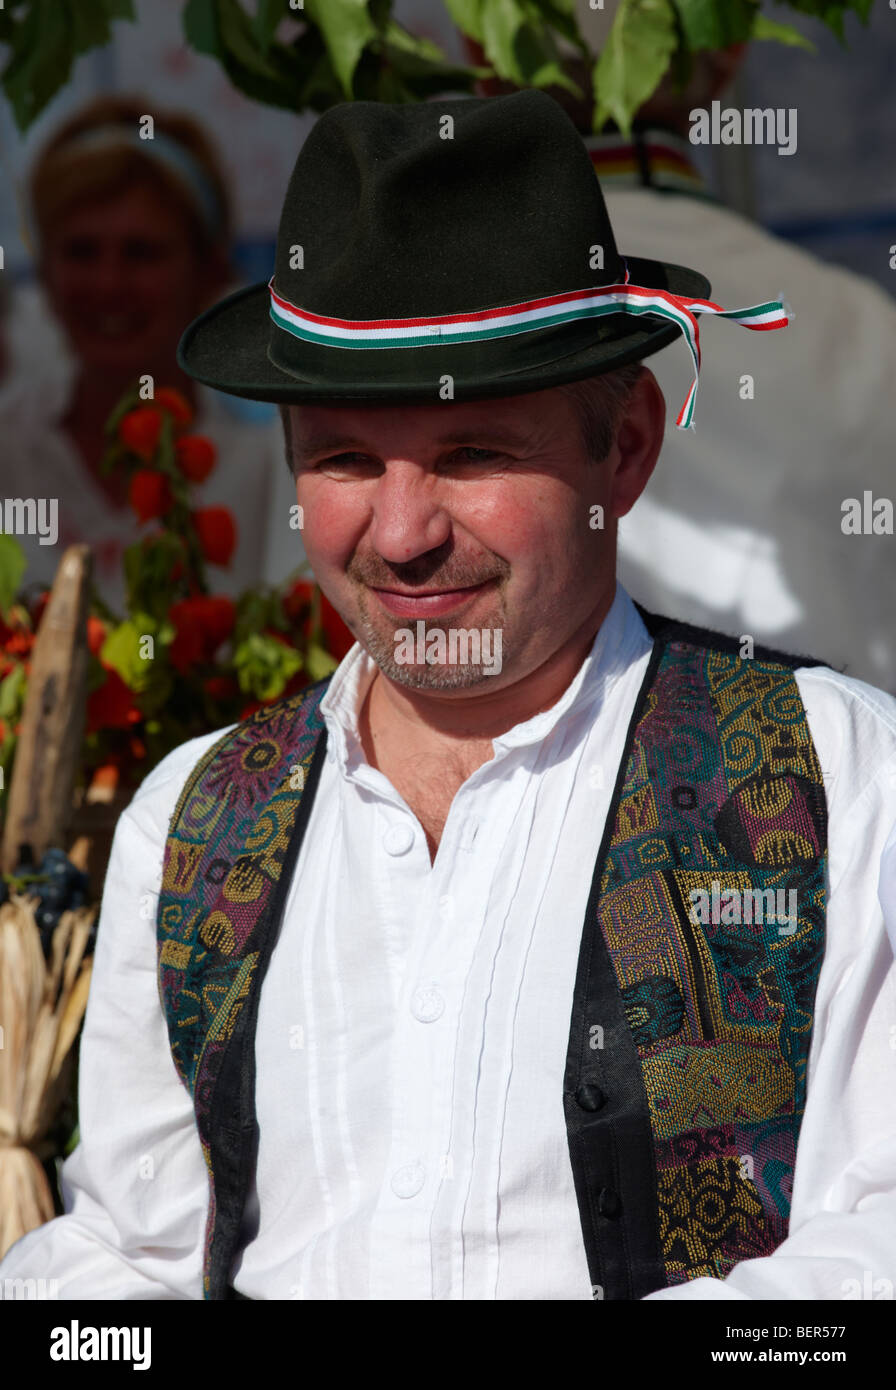 man in Hungarian traditional regional dress - Hungary - Stock Image